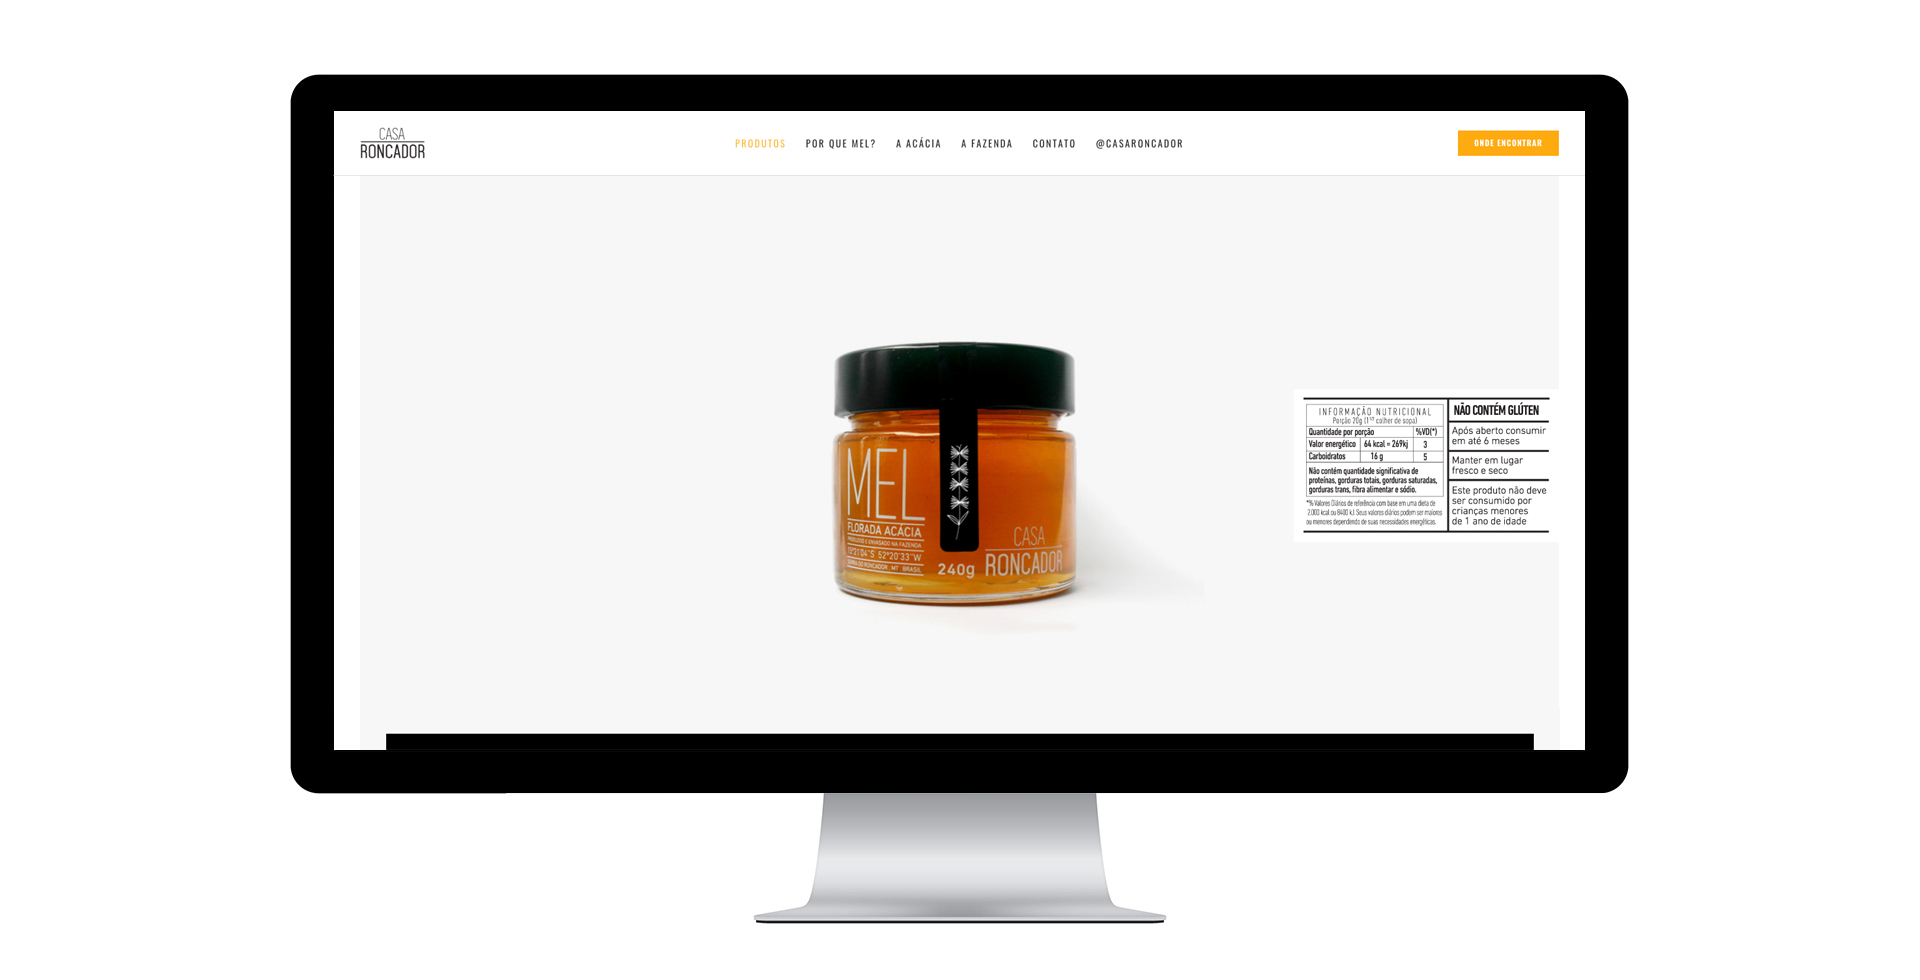 product01-desktop.jpg